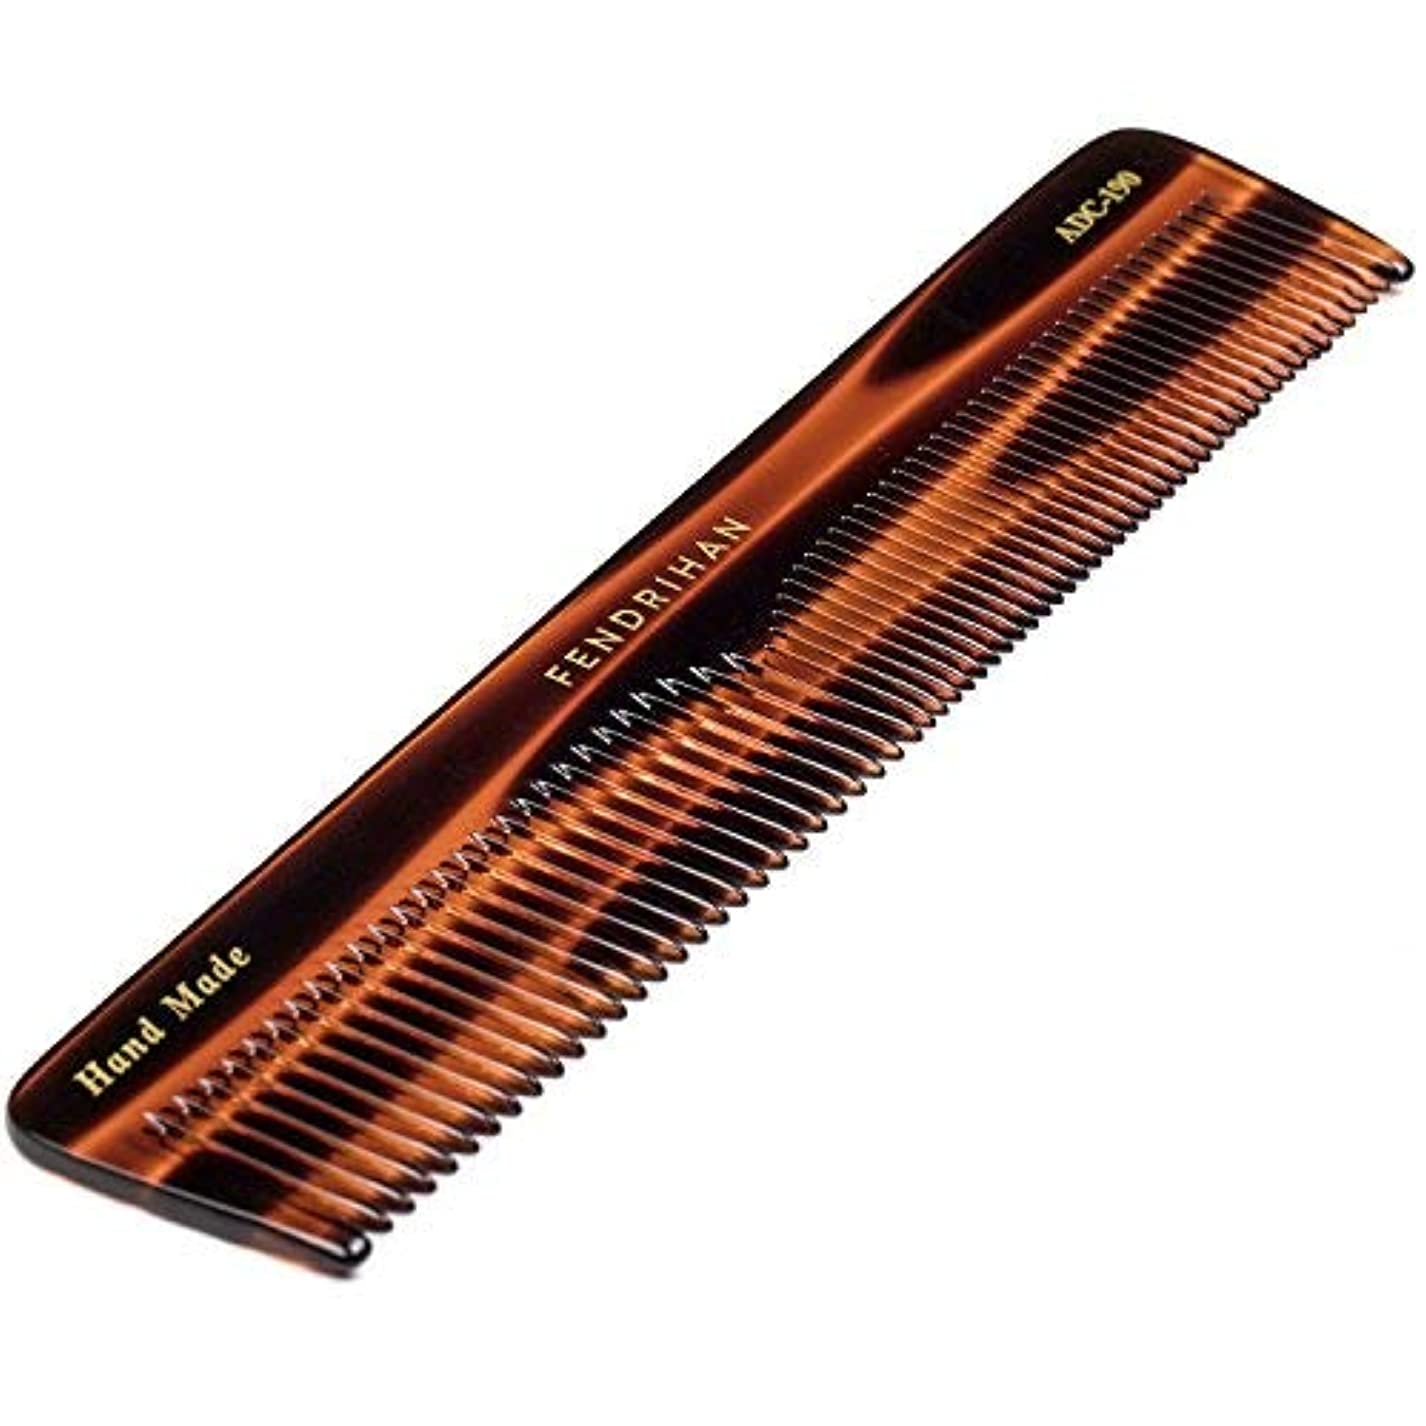 Fendrihan Hand Finished Large Double Tooth Comb for Men, Faux Tortoise (7.3 Inches) [並行輸入品]